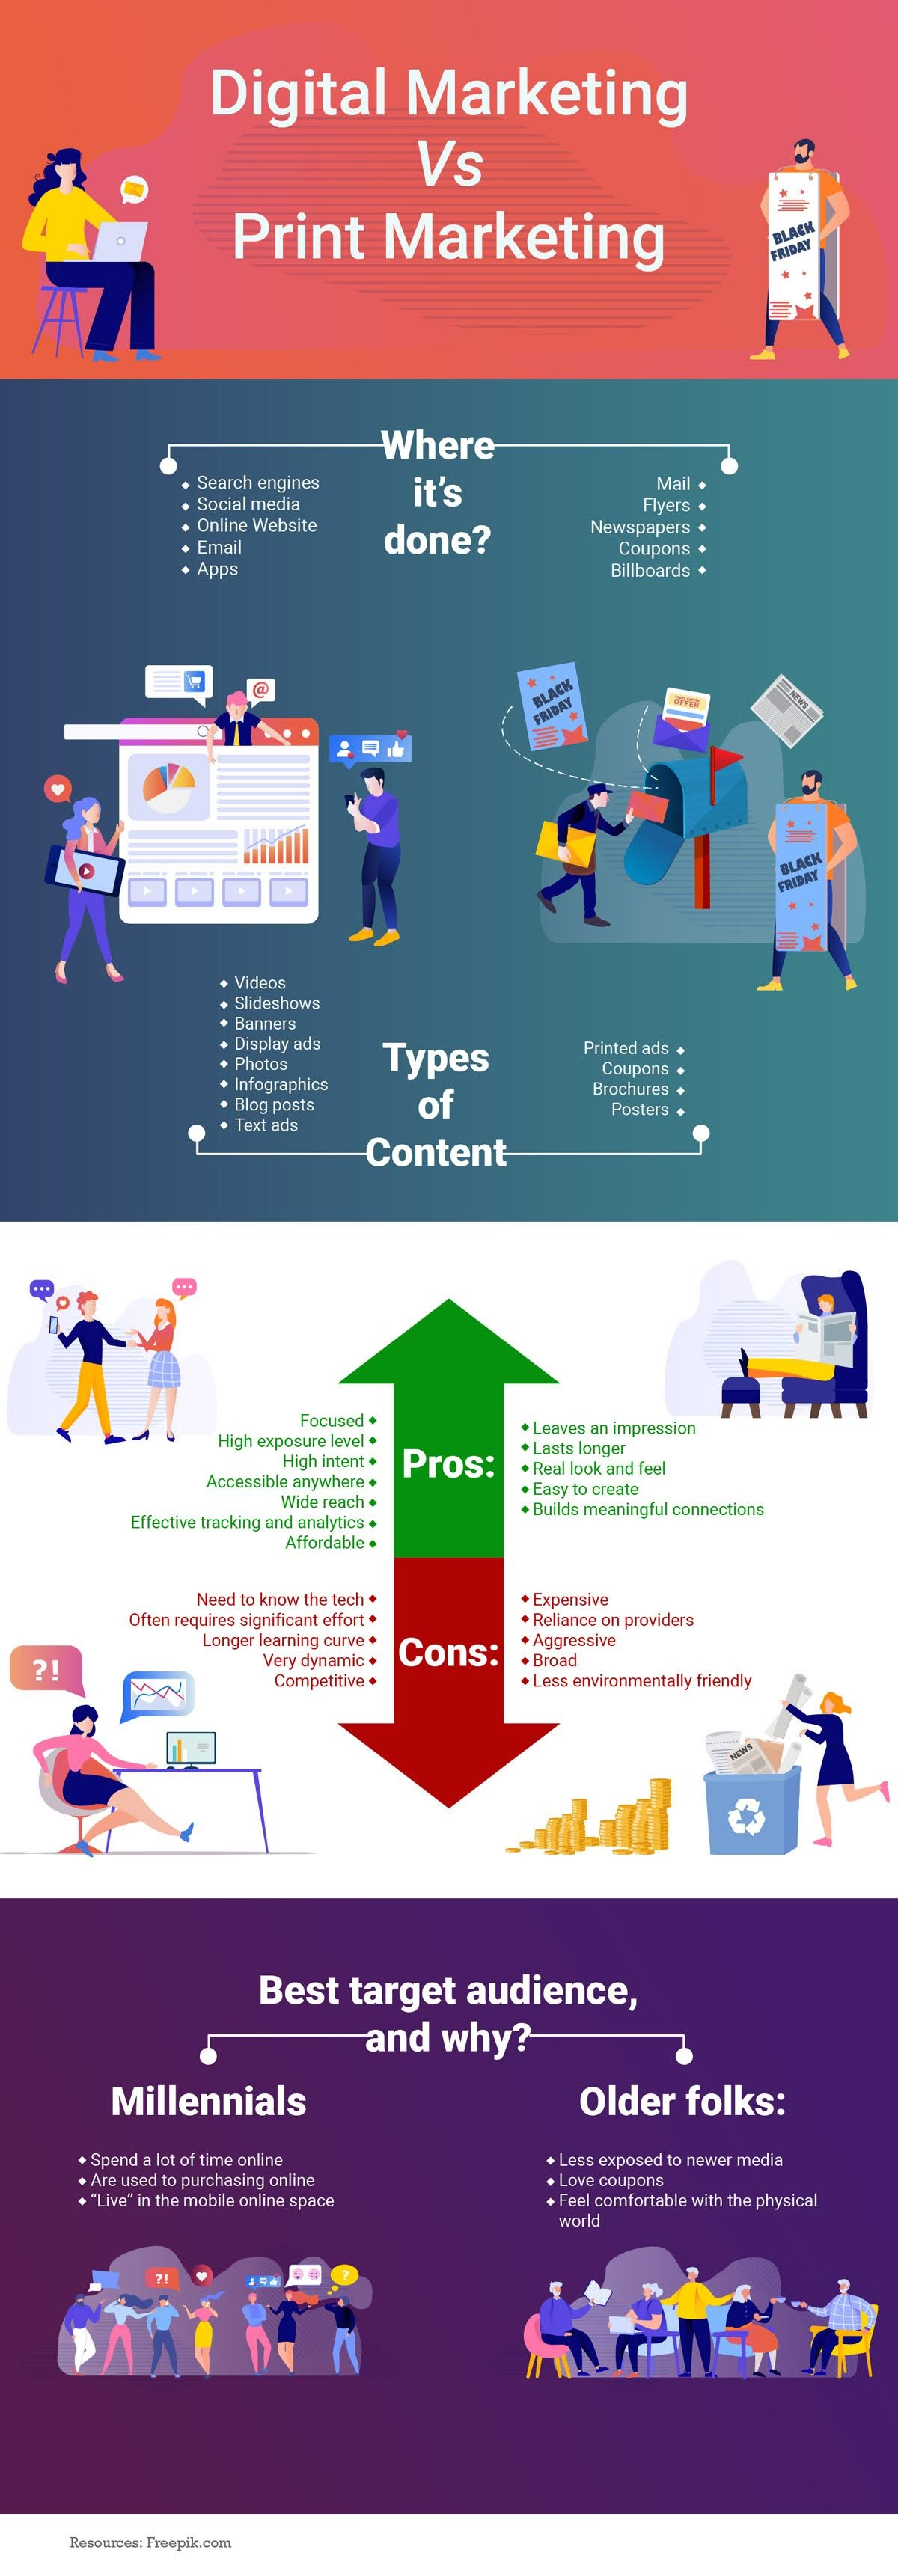 Digital Marketing vs Print Marketing #infographic